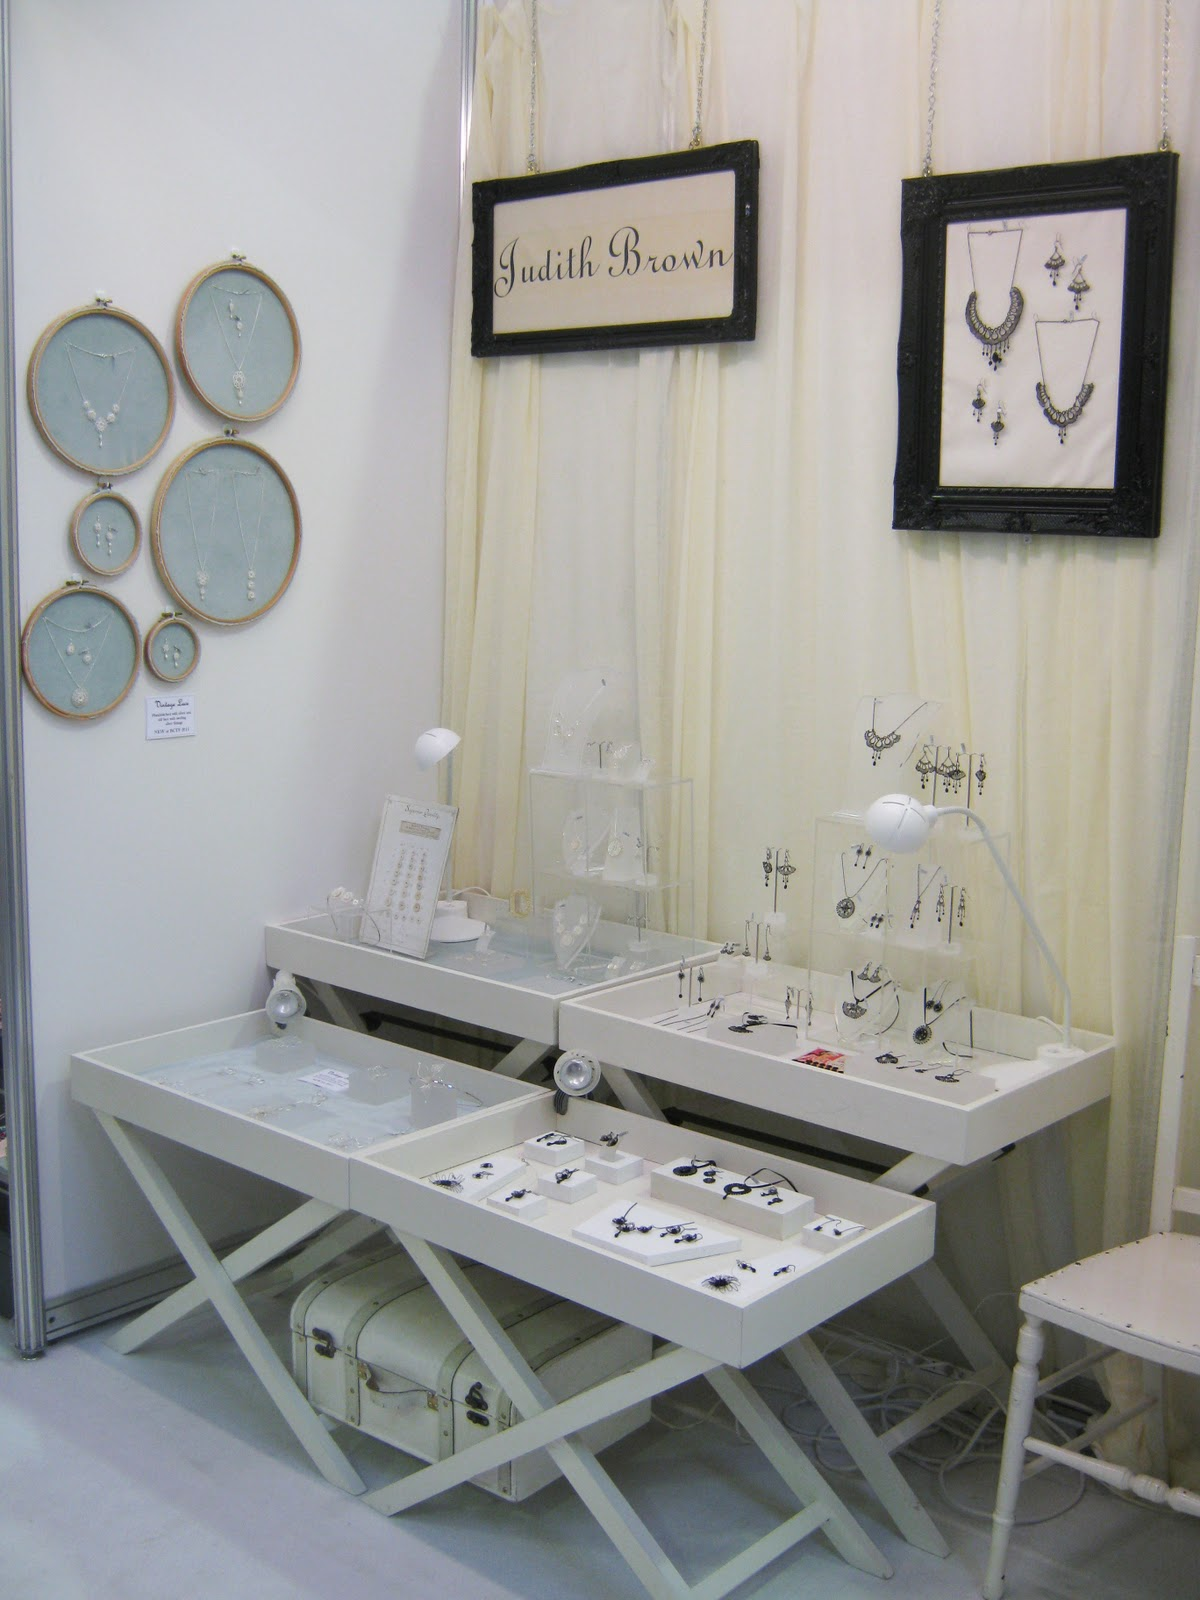 Trade Jewellery Stands : Judith brown jewellery british craft trade fair